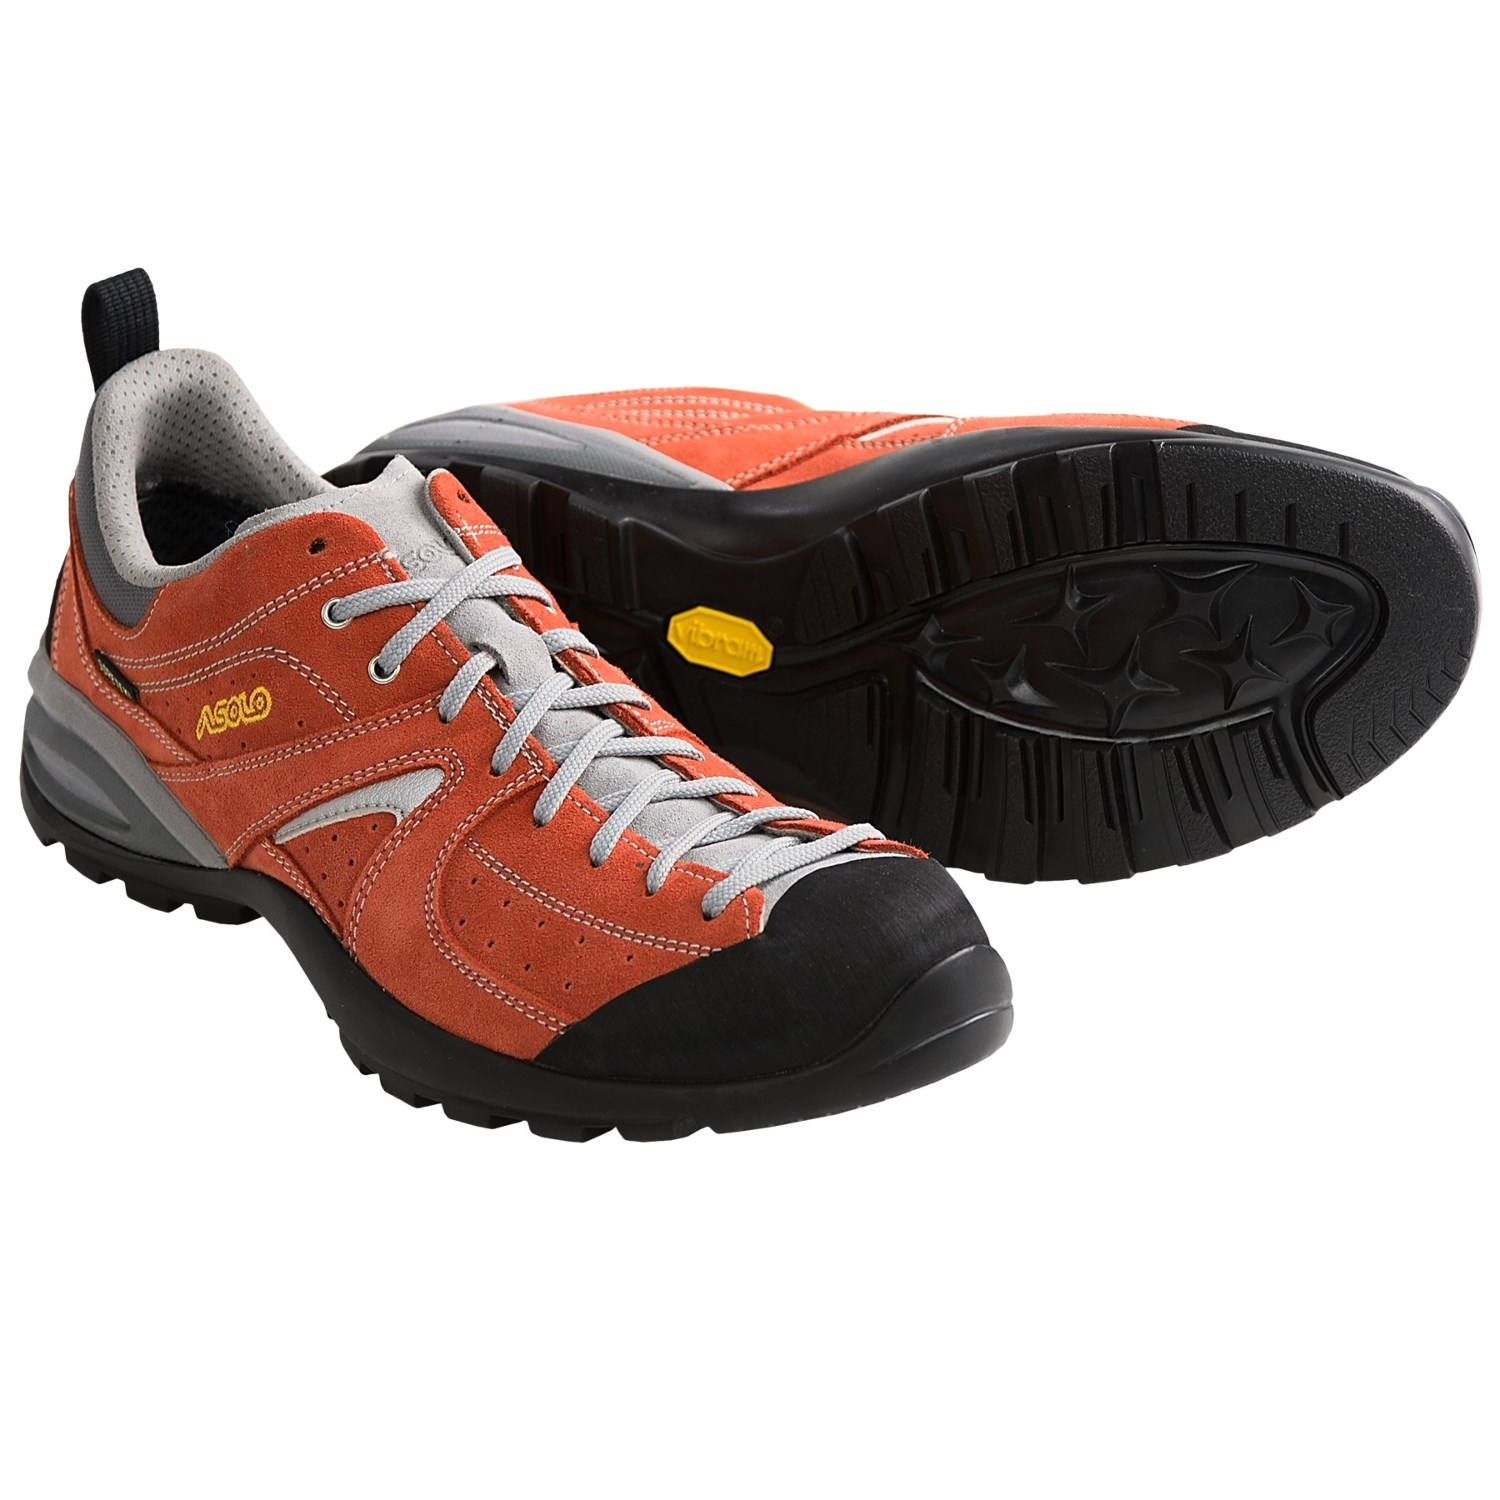 Red Asolo Climbing Shoes